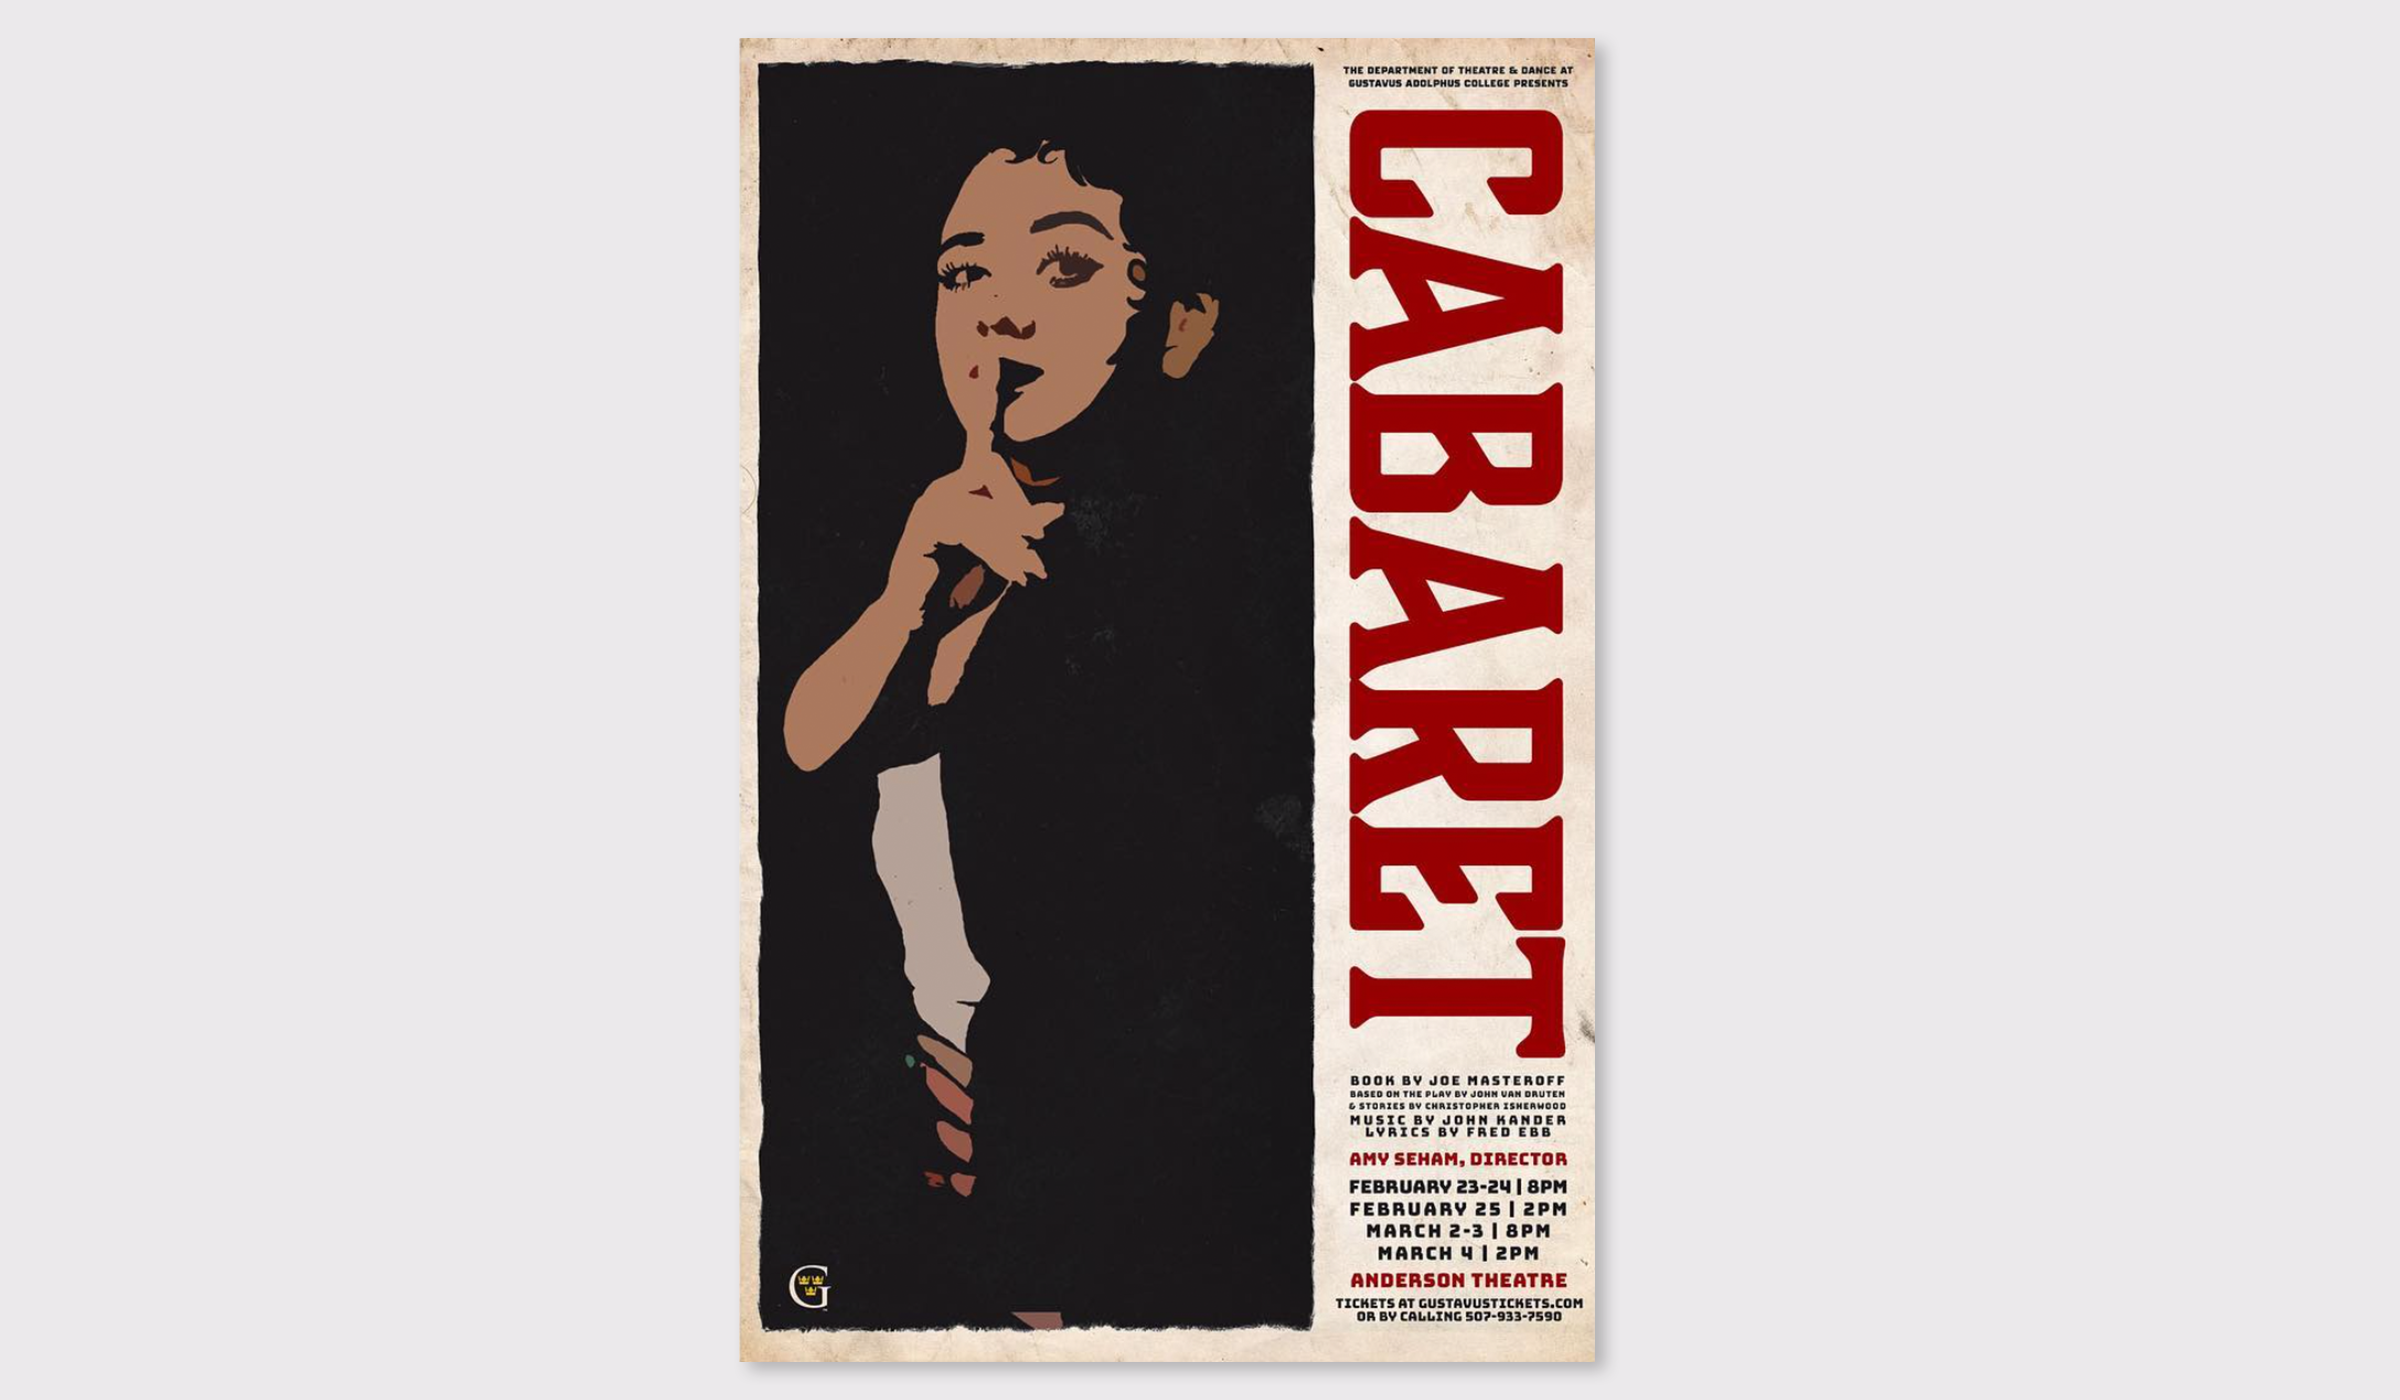 Poster for Gustavus Adolphus College's production of Cabaret